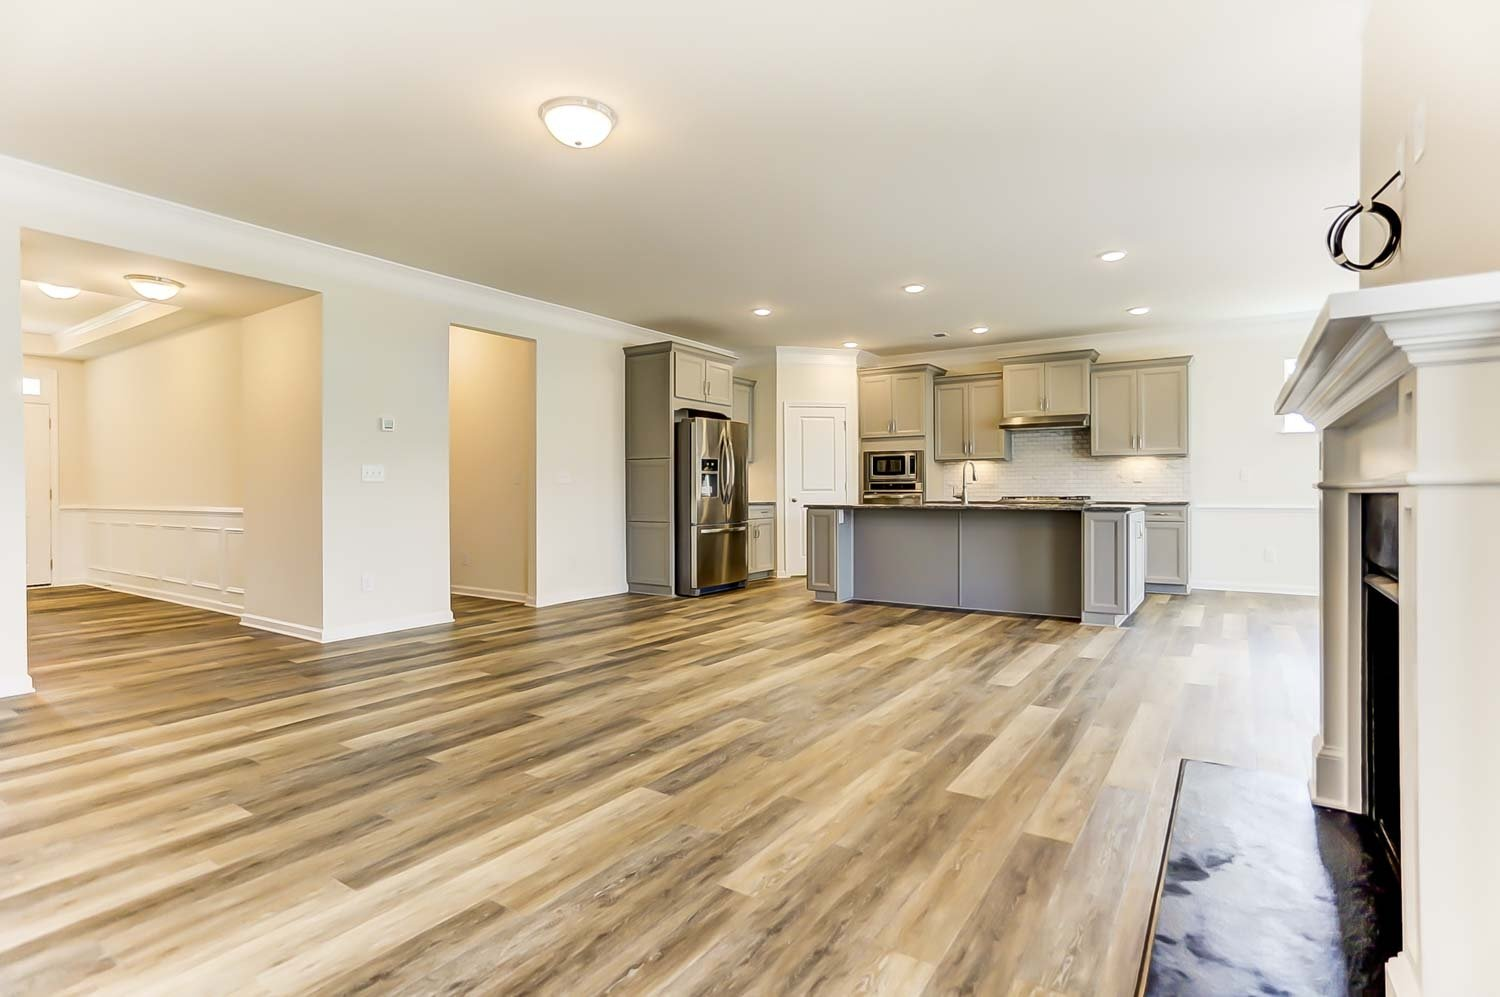 How Much Does Vinyl Plank Flooring Expand And Contract